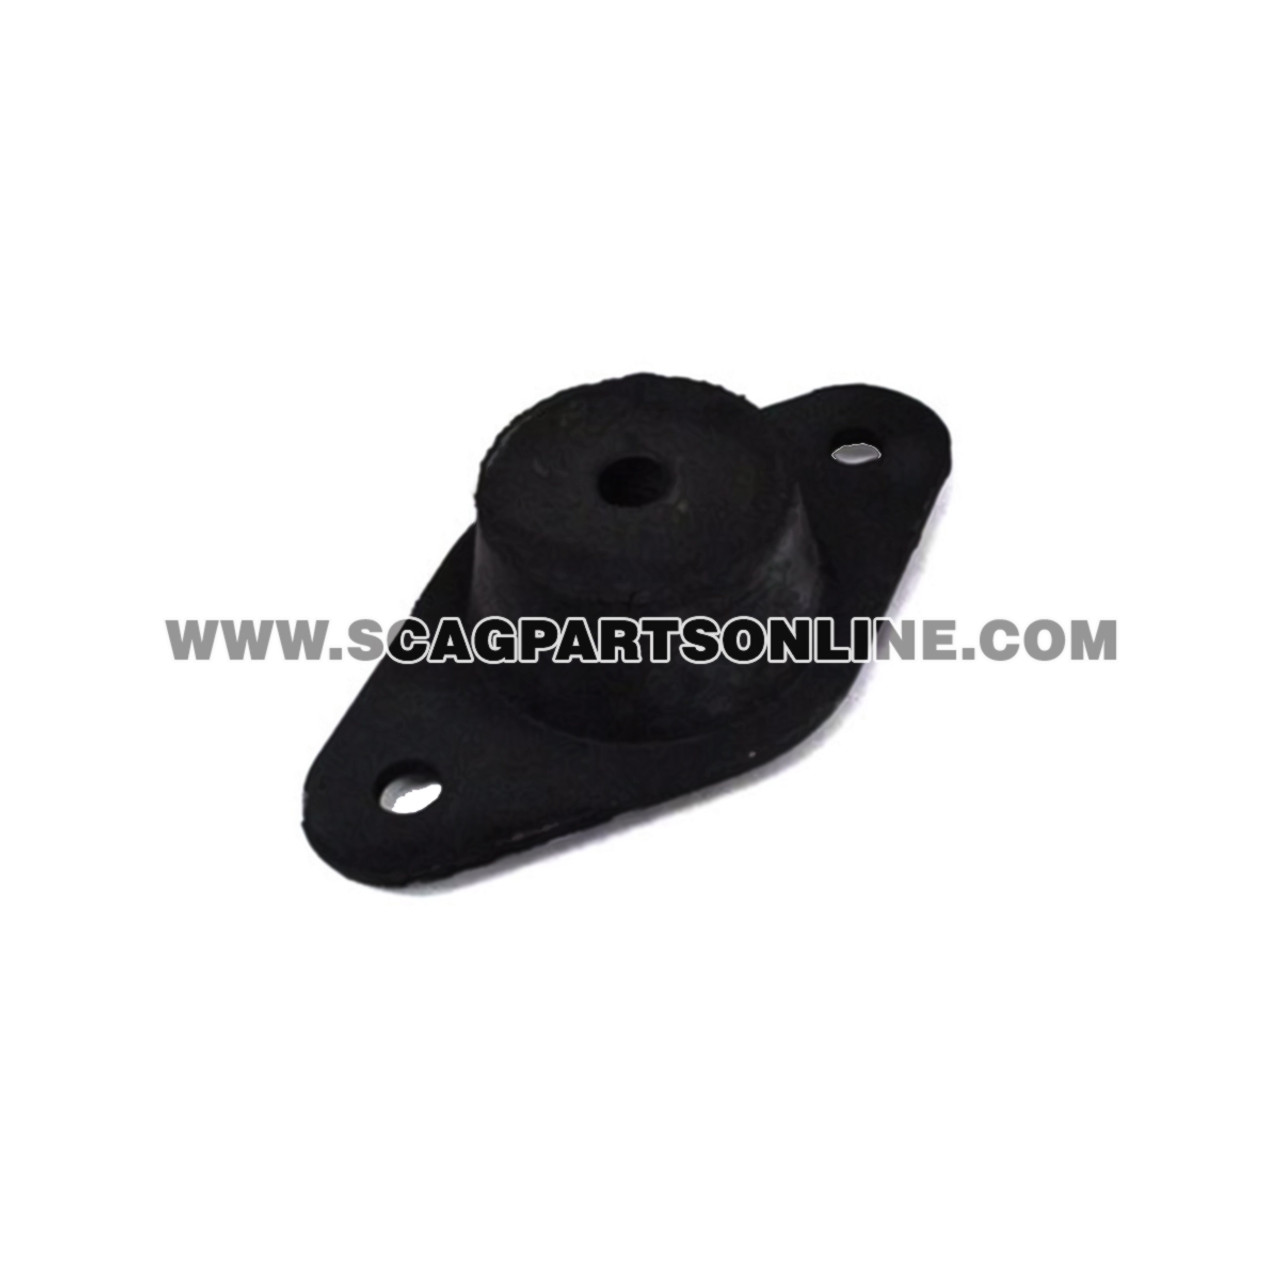 Scag Seat Isolator 484148 OEM